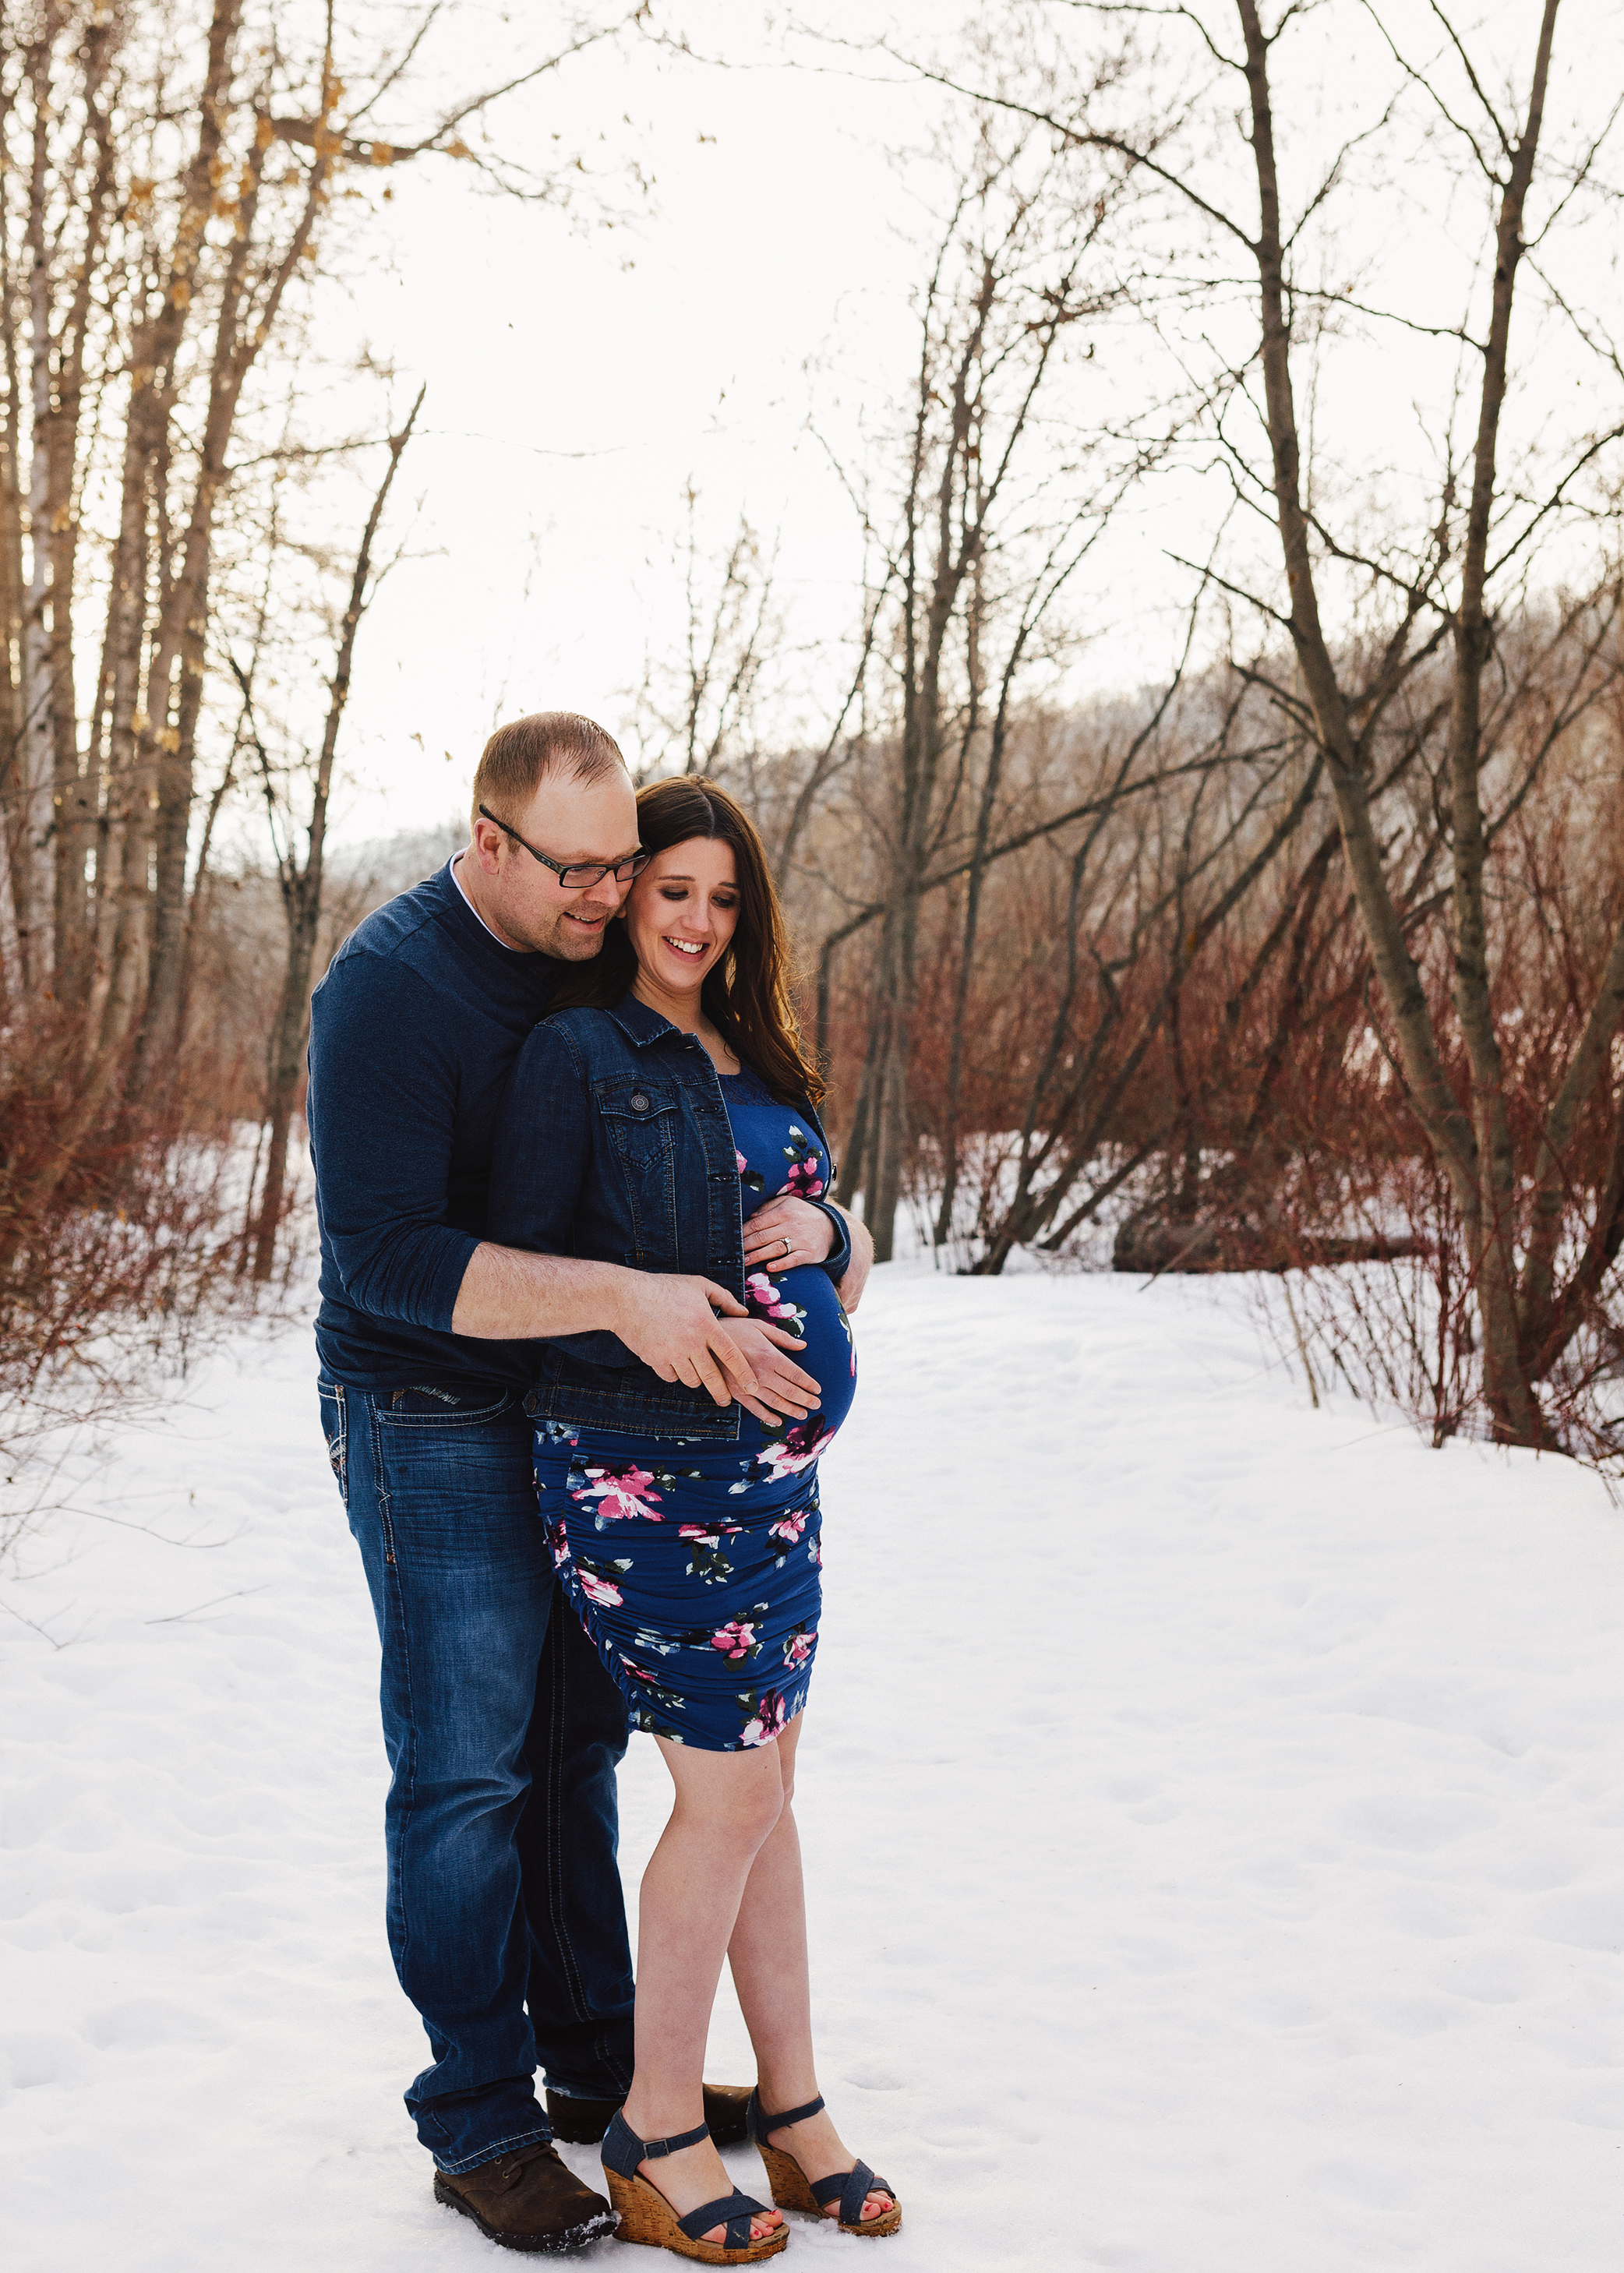 Edmonton Maternity Photographer_Brittany Sneak Peek 10.jpg